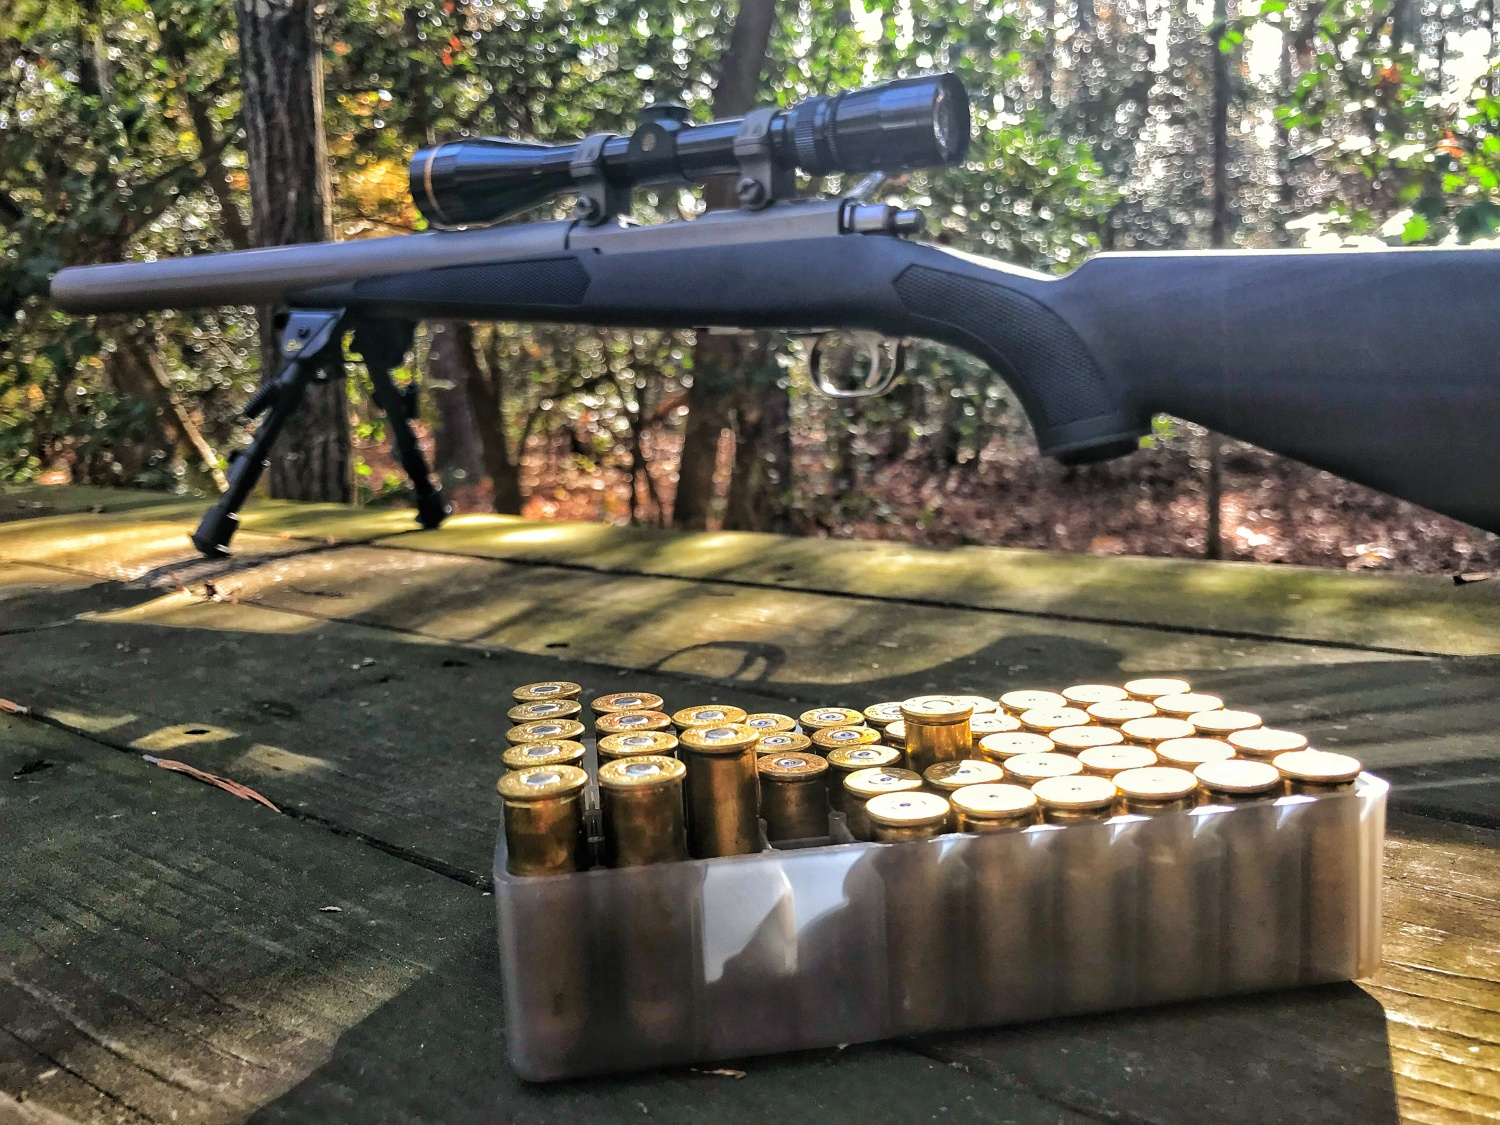 TFB REVIEW: The Integrally Suppressed Firearms Of TBA